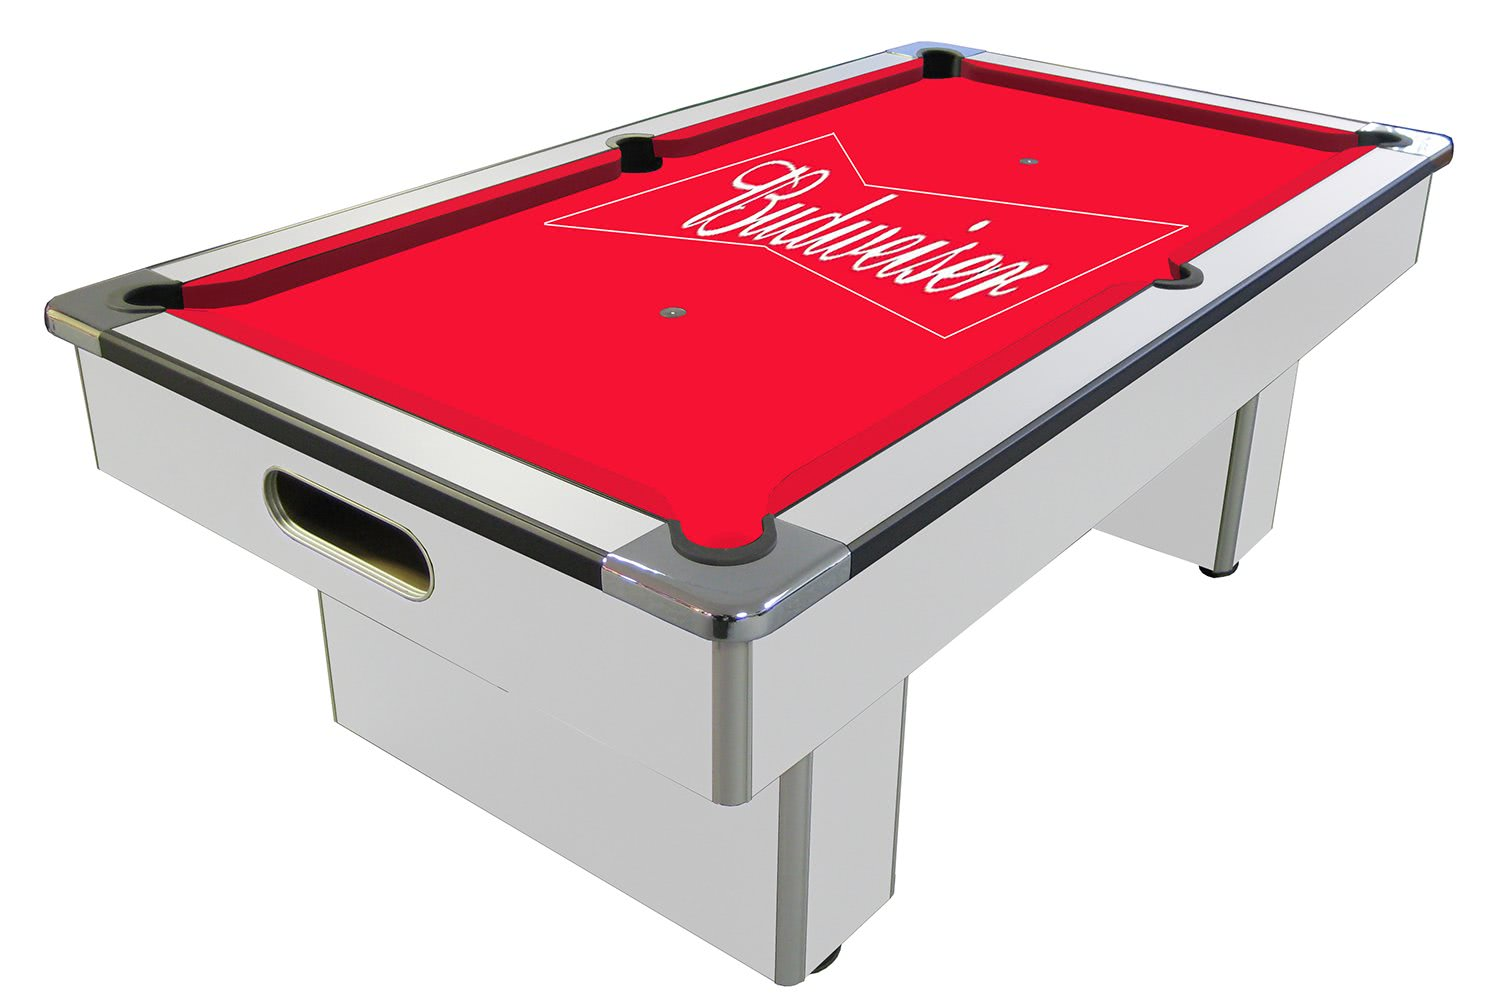 Budweiser slate bed pool table 6 ft 7 ft liberty games for Table 6 table